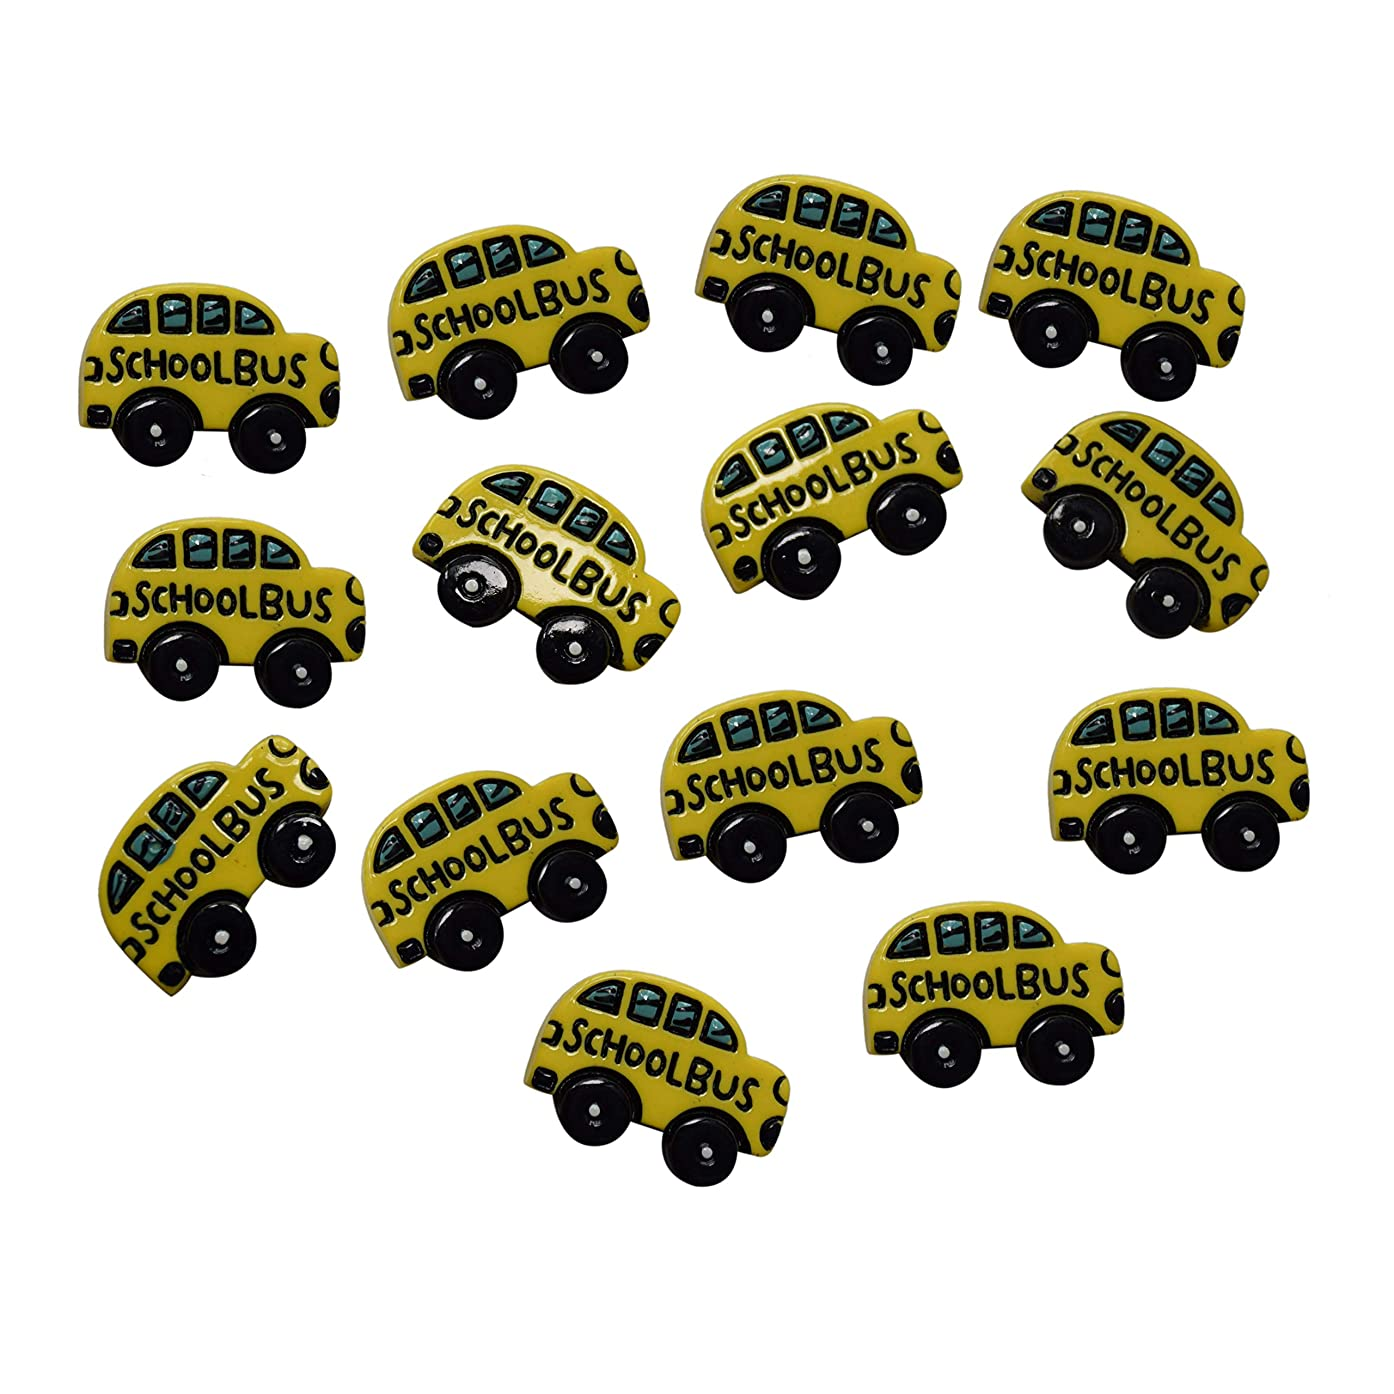 AMOBESTER Sime Charms School Bus 30Psc Decorative Slime Beads For Arts Crafts Ornament